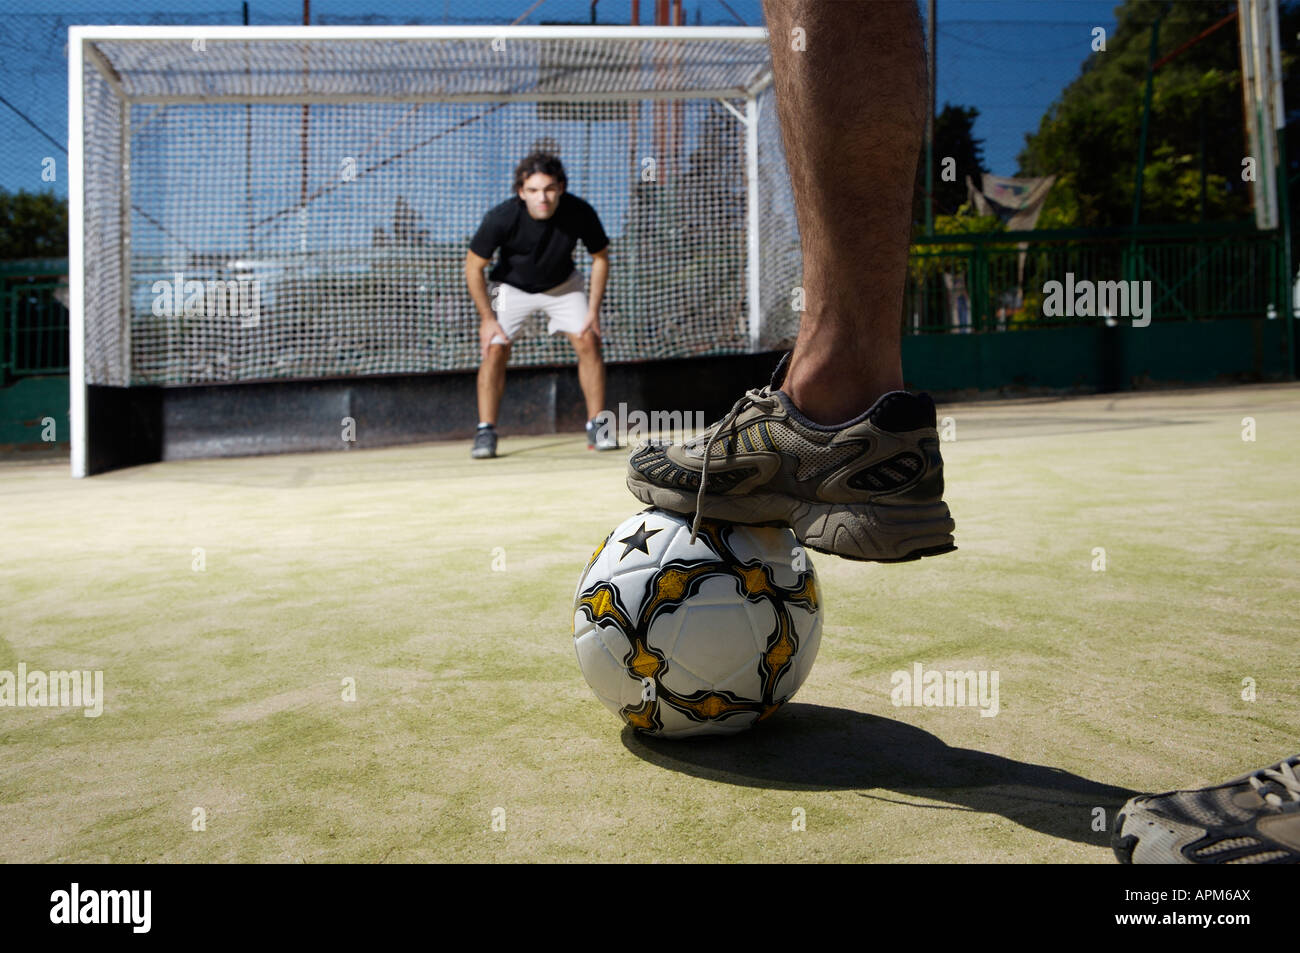 Friends playing football - Stock Image